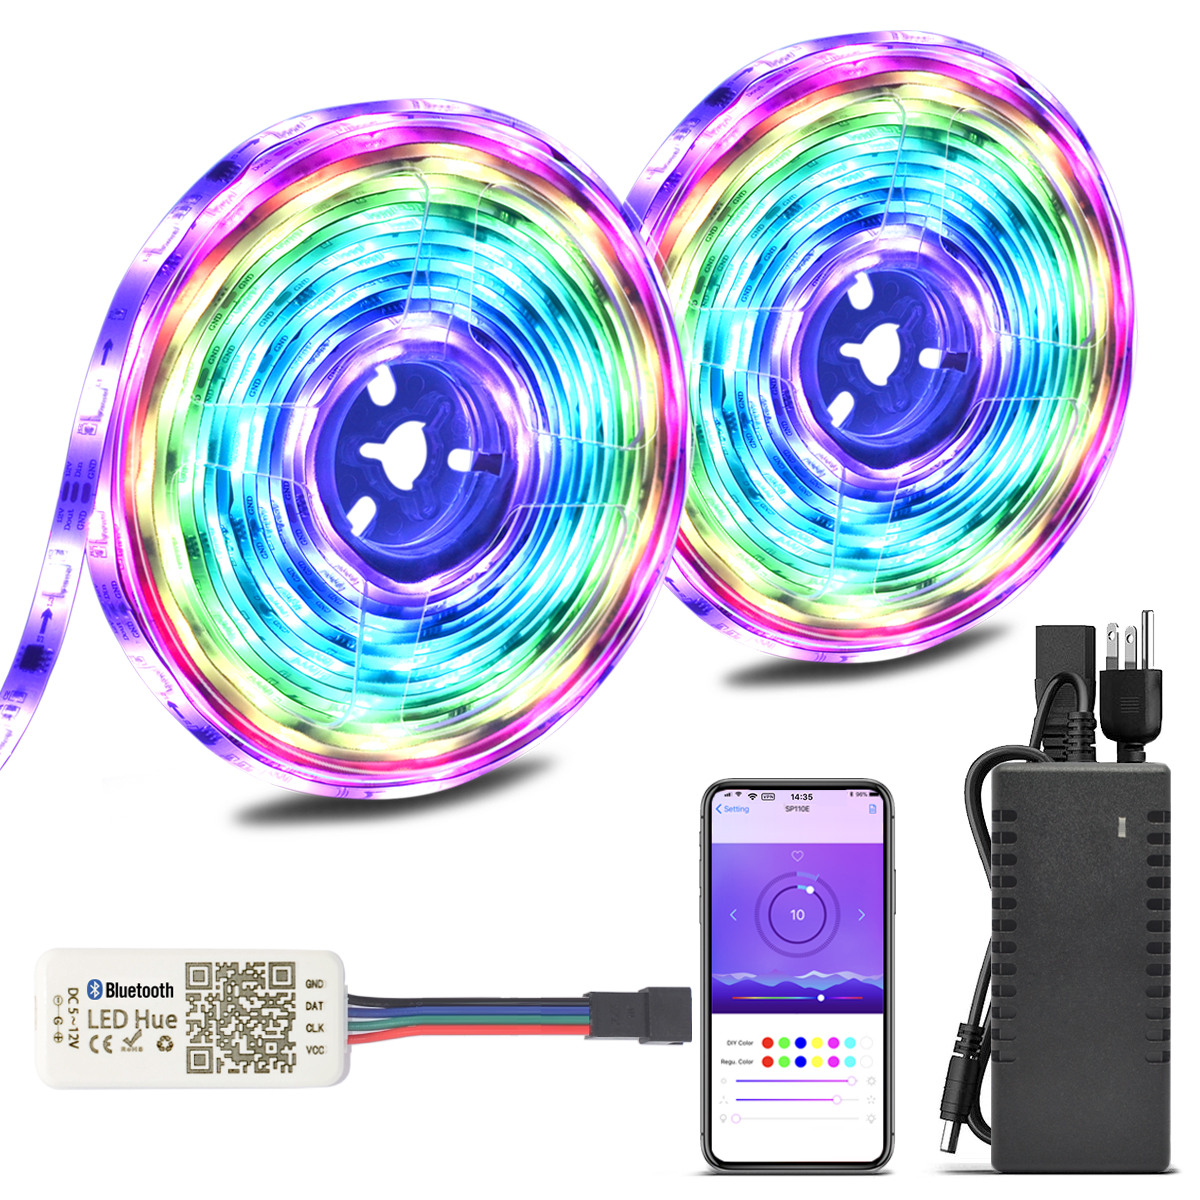 2018 New Upgraded 32.8ft/10M Waterproof Dream Color Chasing Addressable RGB Flexible LED Strip Light Kit, DC12V 300LEDs with Bluetooth SPI Controller, for Home, Party, Christmas, Car Decoration